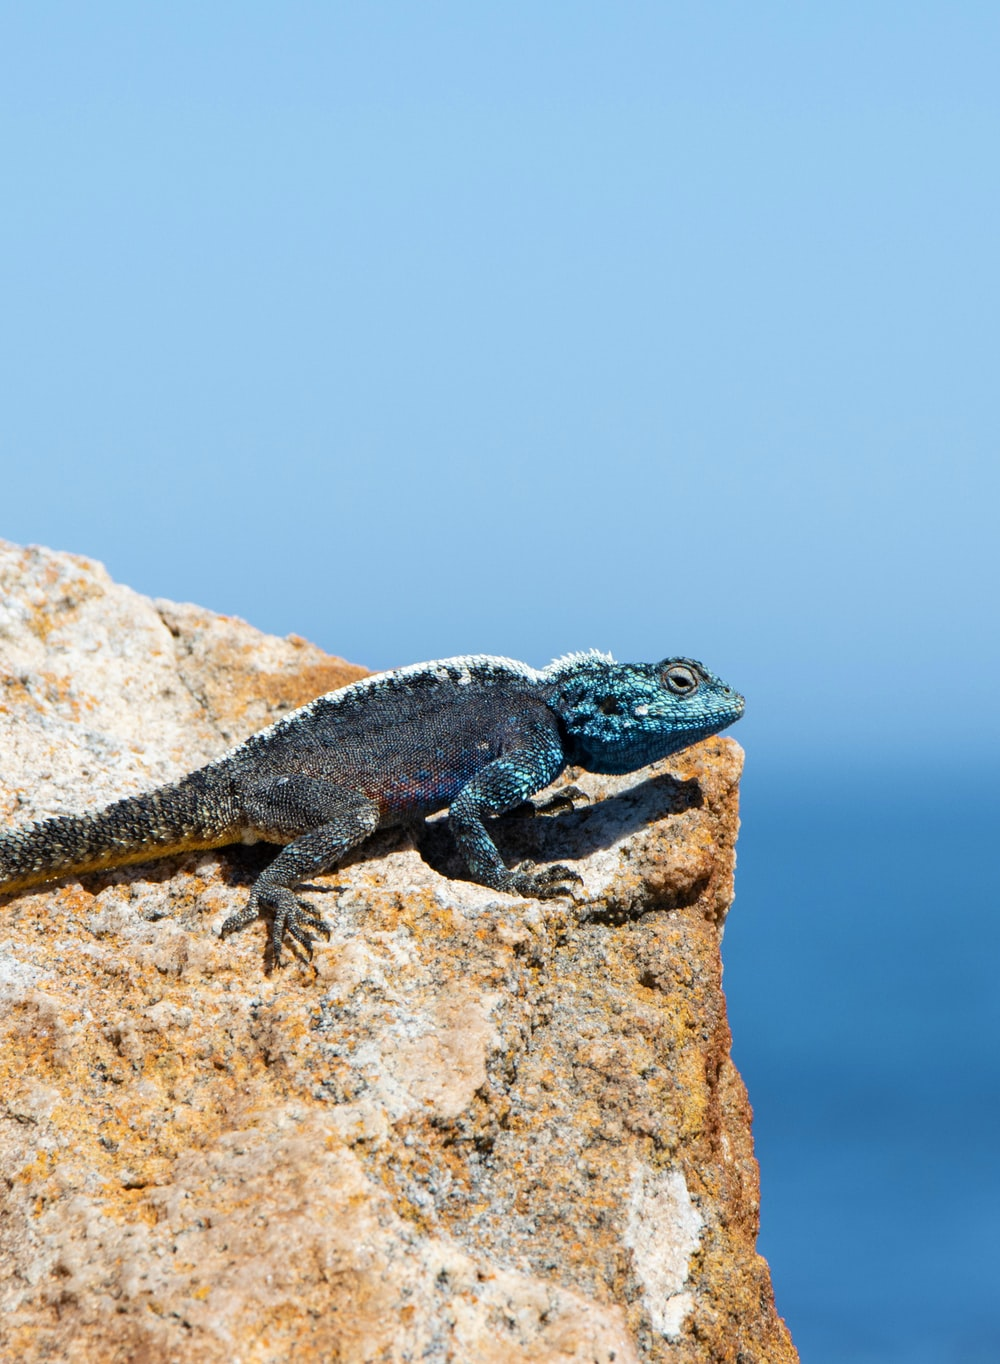 blue and black lizard on brown rock during daytime